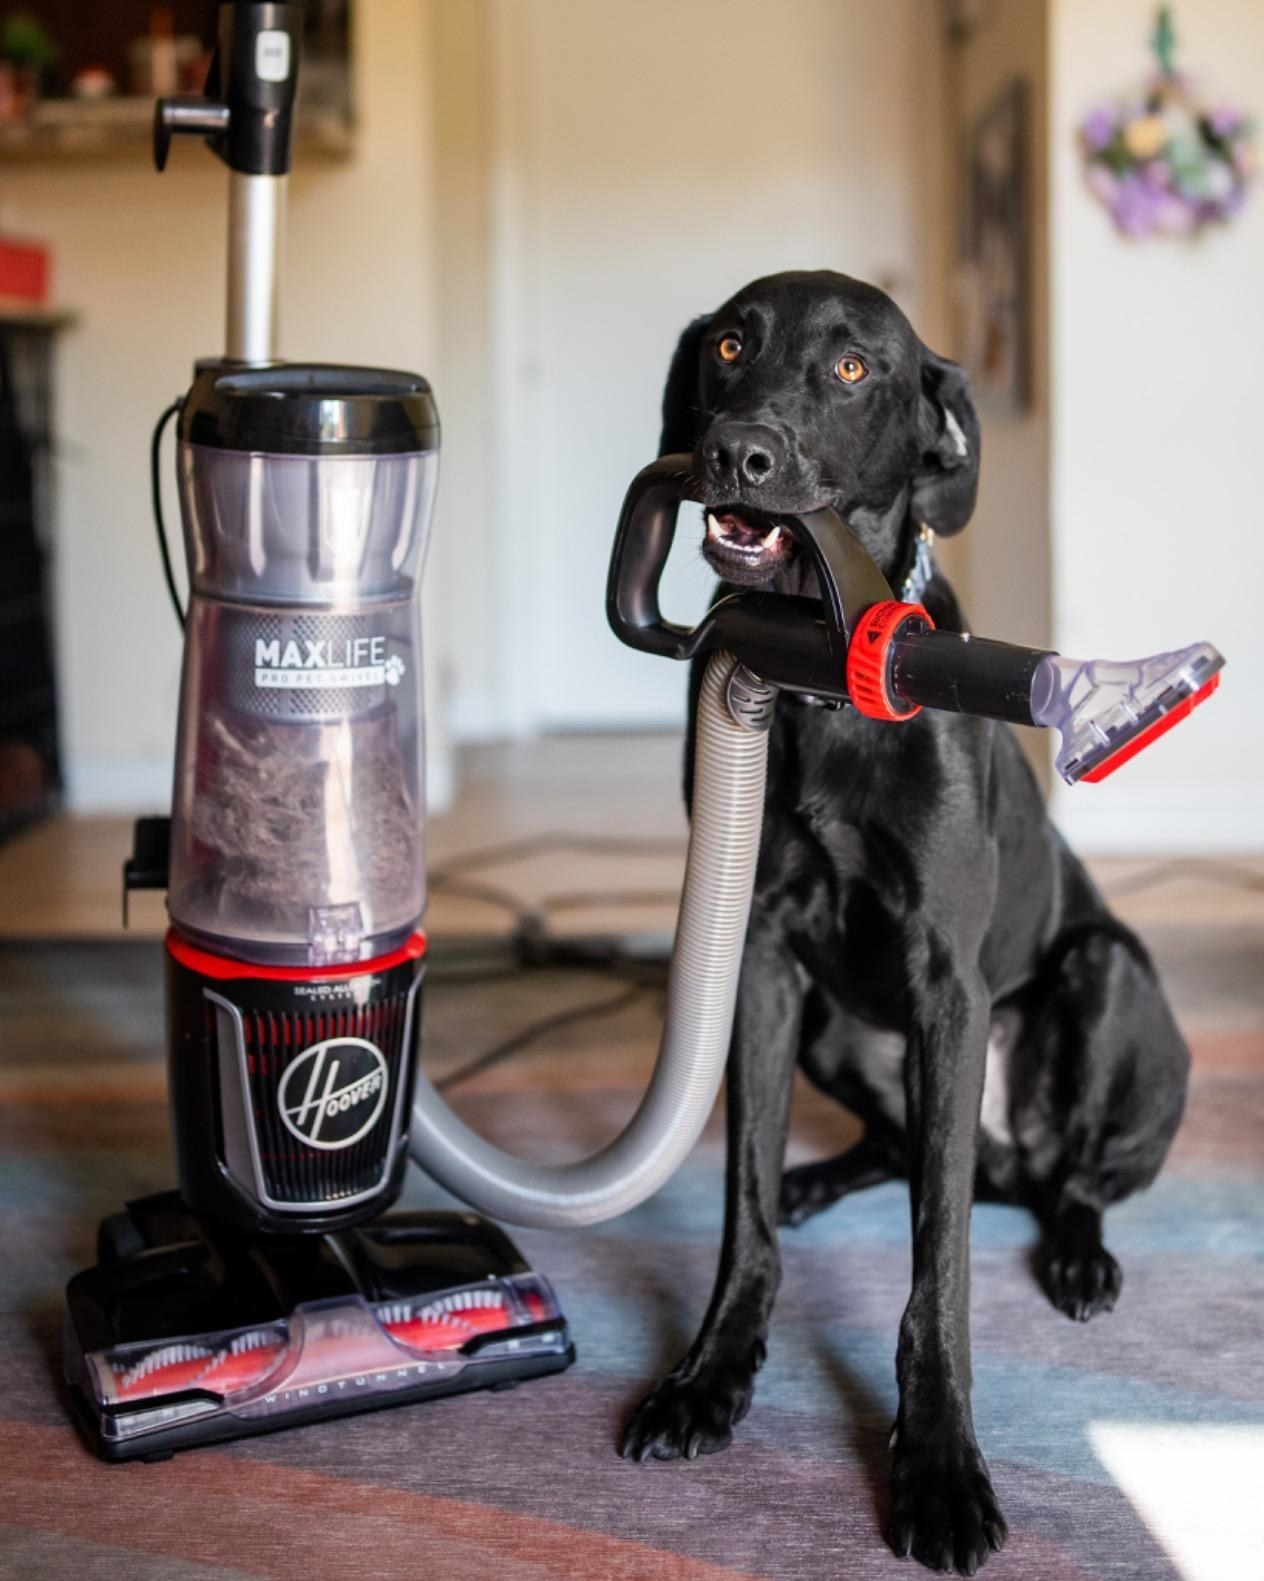 Black dog holding vacuum handle in its mouth